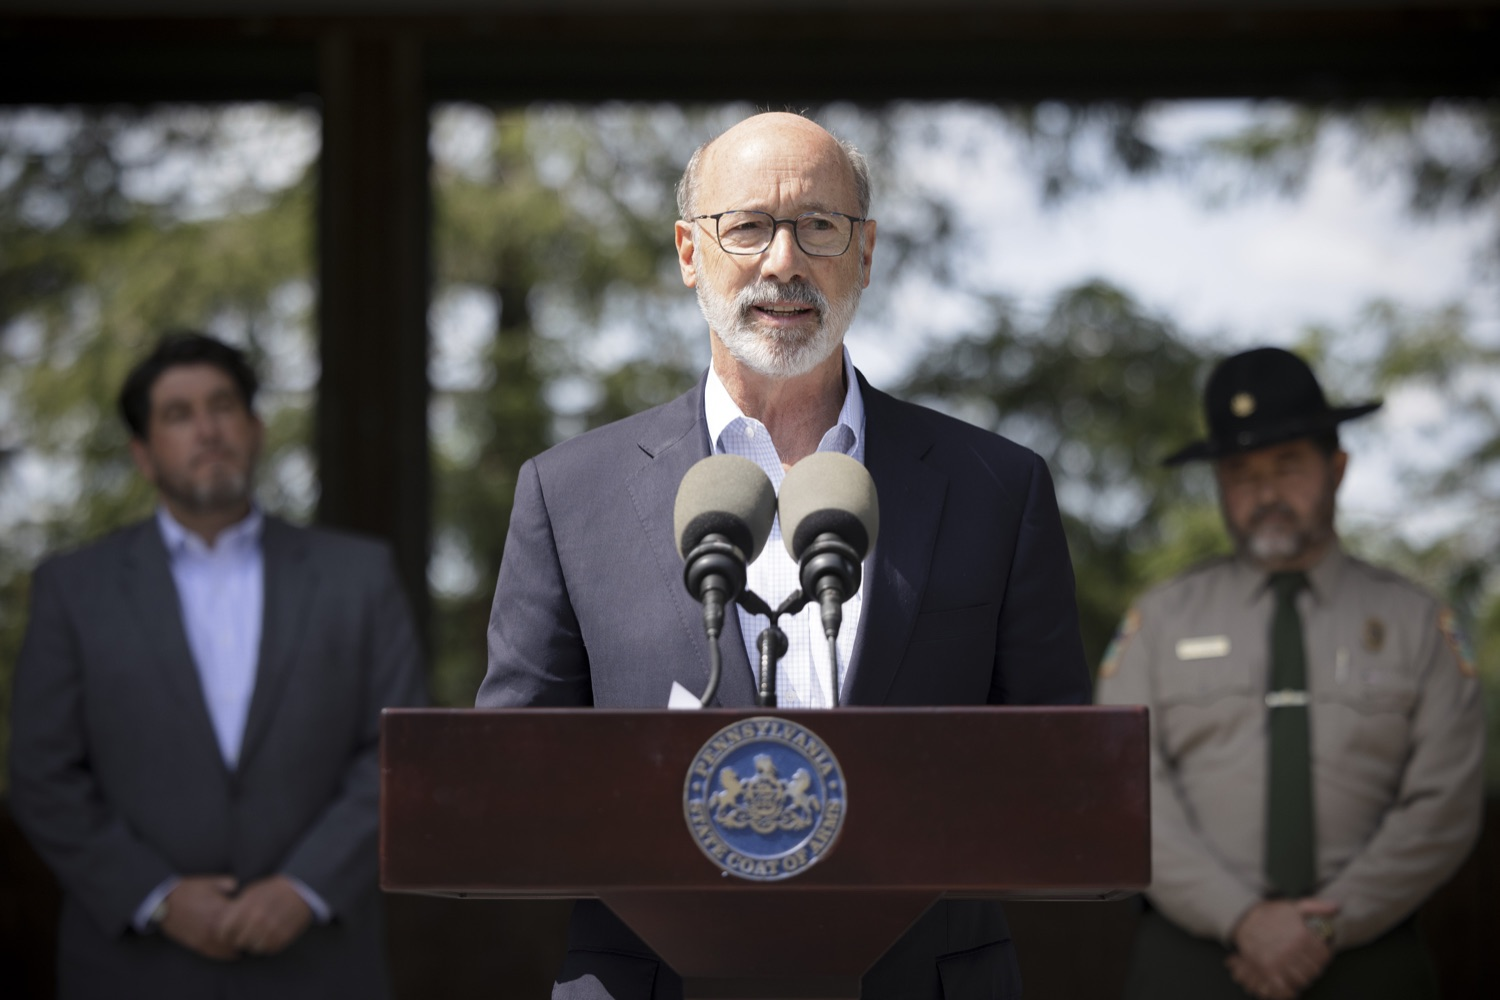 """<a href=""""https://filesource.wostreaming.net/commonwealthofpa/photo/19111_gov_parkVaccines_dz_020.jpg"""" target=""""_blank"""">⇣Download Photo<br></a>Pennsylvania Governor Tom Wolf speaking with the press.  Governor Tom Wolf today announced that the Department of Health (DOH) and Department of Conservation and Natural Resources (DCNR) are partnering to hold COVID-19 vaccine clinics at five state parks across the commonwealth to help expand access to the COVID-19 vaccine.  Harrisburg, PA -- September 10, 2021"""